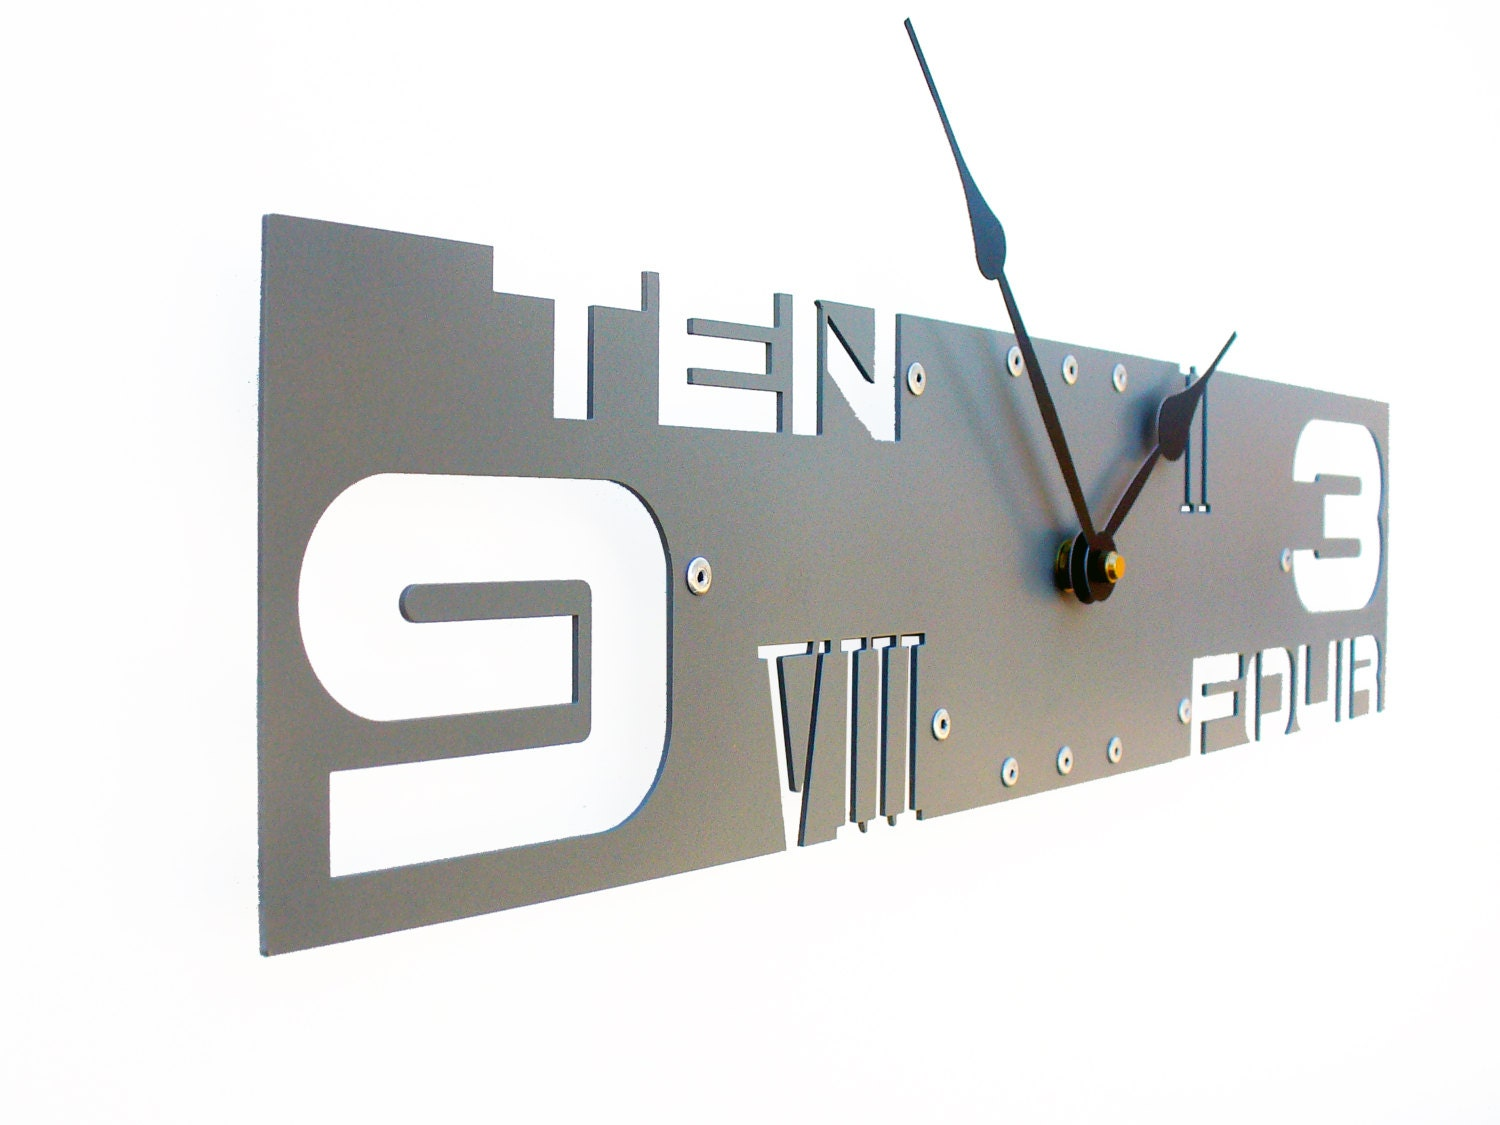 Outnumbered iv large wall clock unique wall clock modern details this large wall clock amipublicfo Image collections